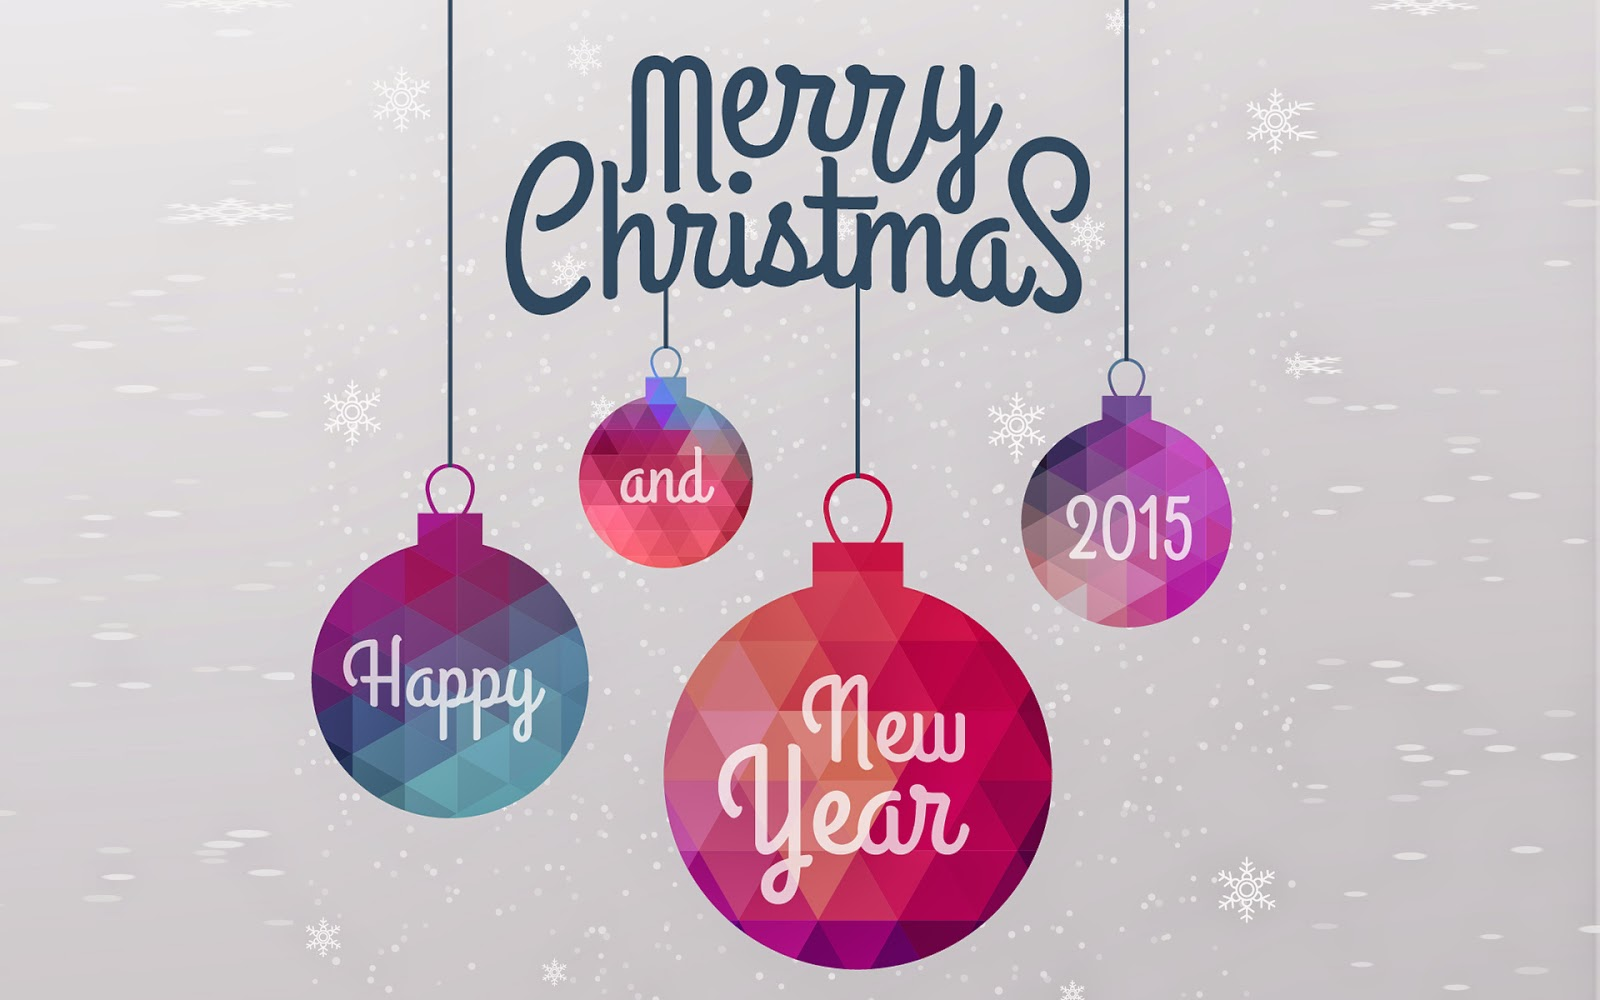 merry-christmas-and-happy-new-year-2015-wishes-full-hd-wallpaper.jpg